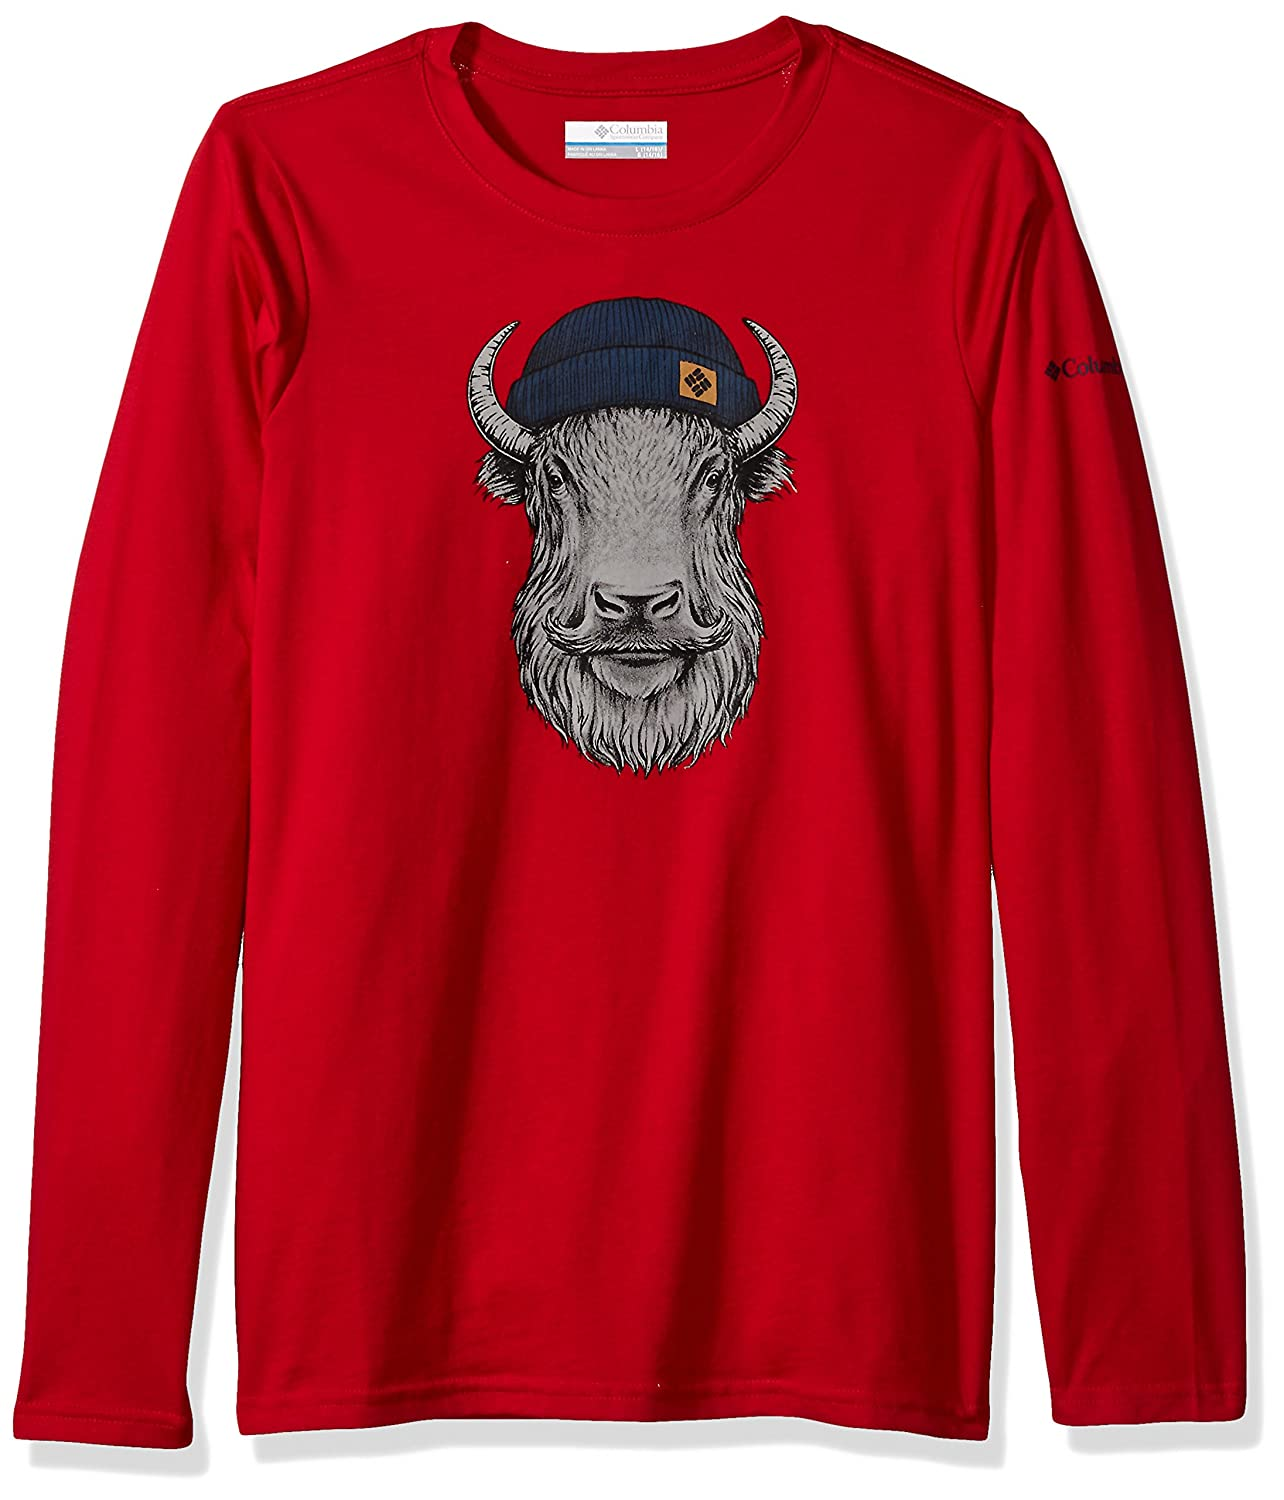 Columbia Boys' Winter Buddy Long Sleeve Tee 1741051-A